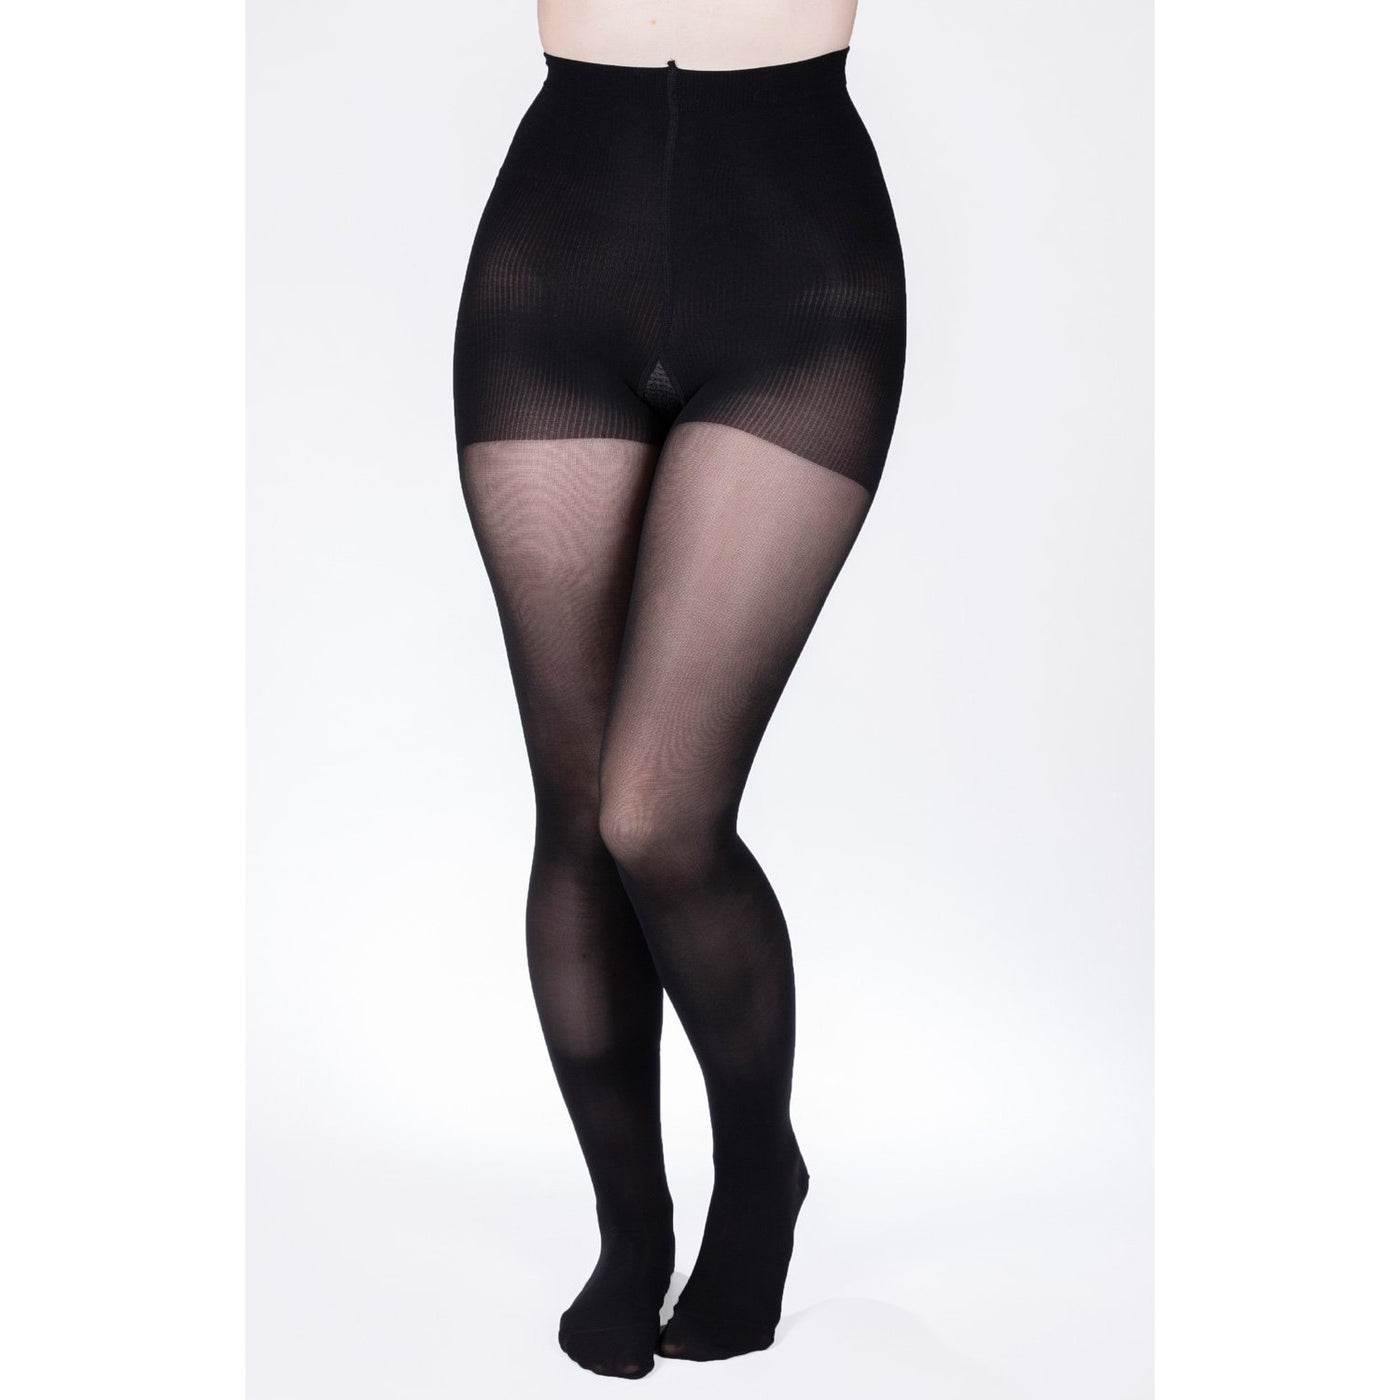 50a3f54f263 BrightLife Direct. Home Allegro Premium - Sheer Pantyhose 20-30mmHg. Hover  to zoom